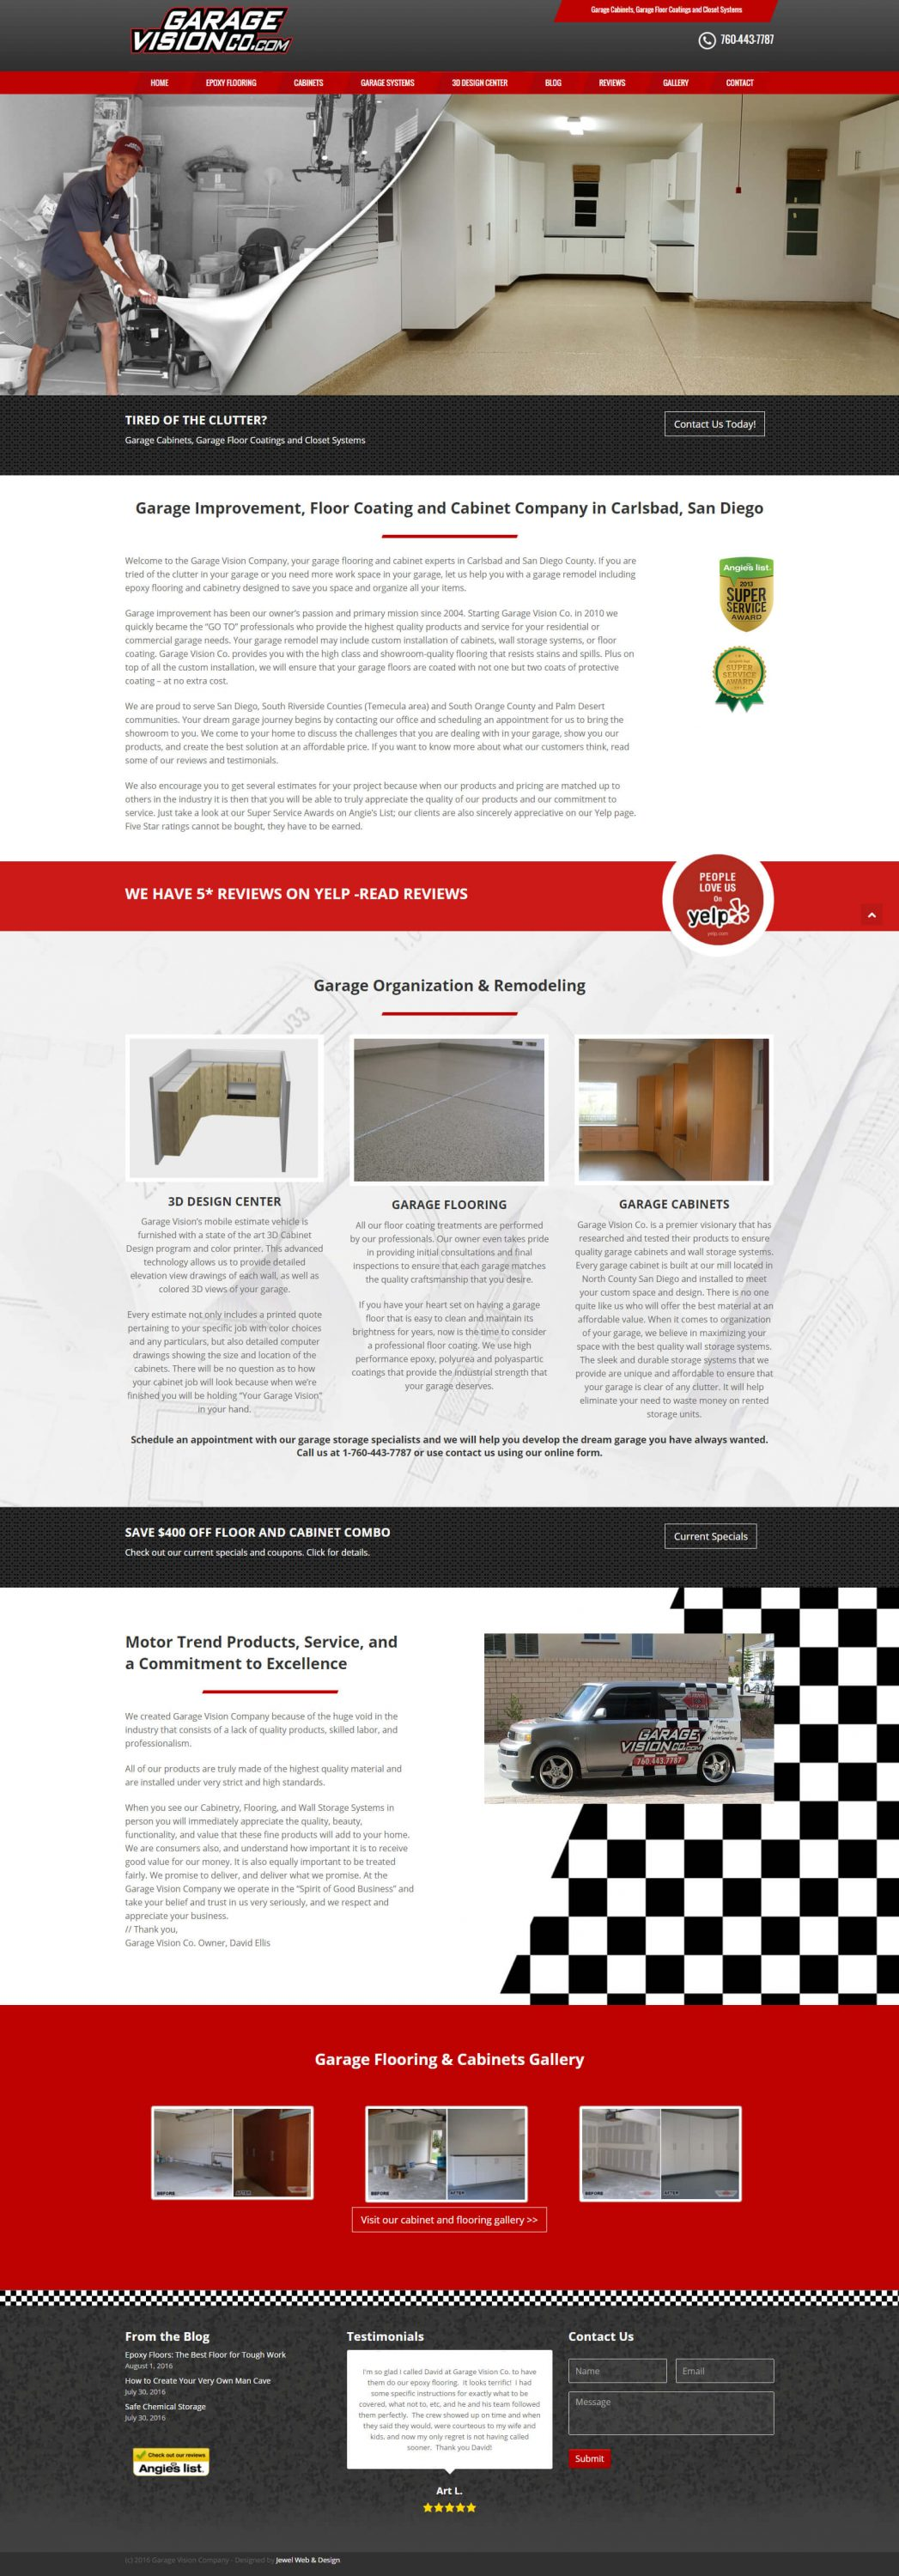 garageflooring-website2